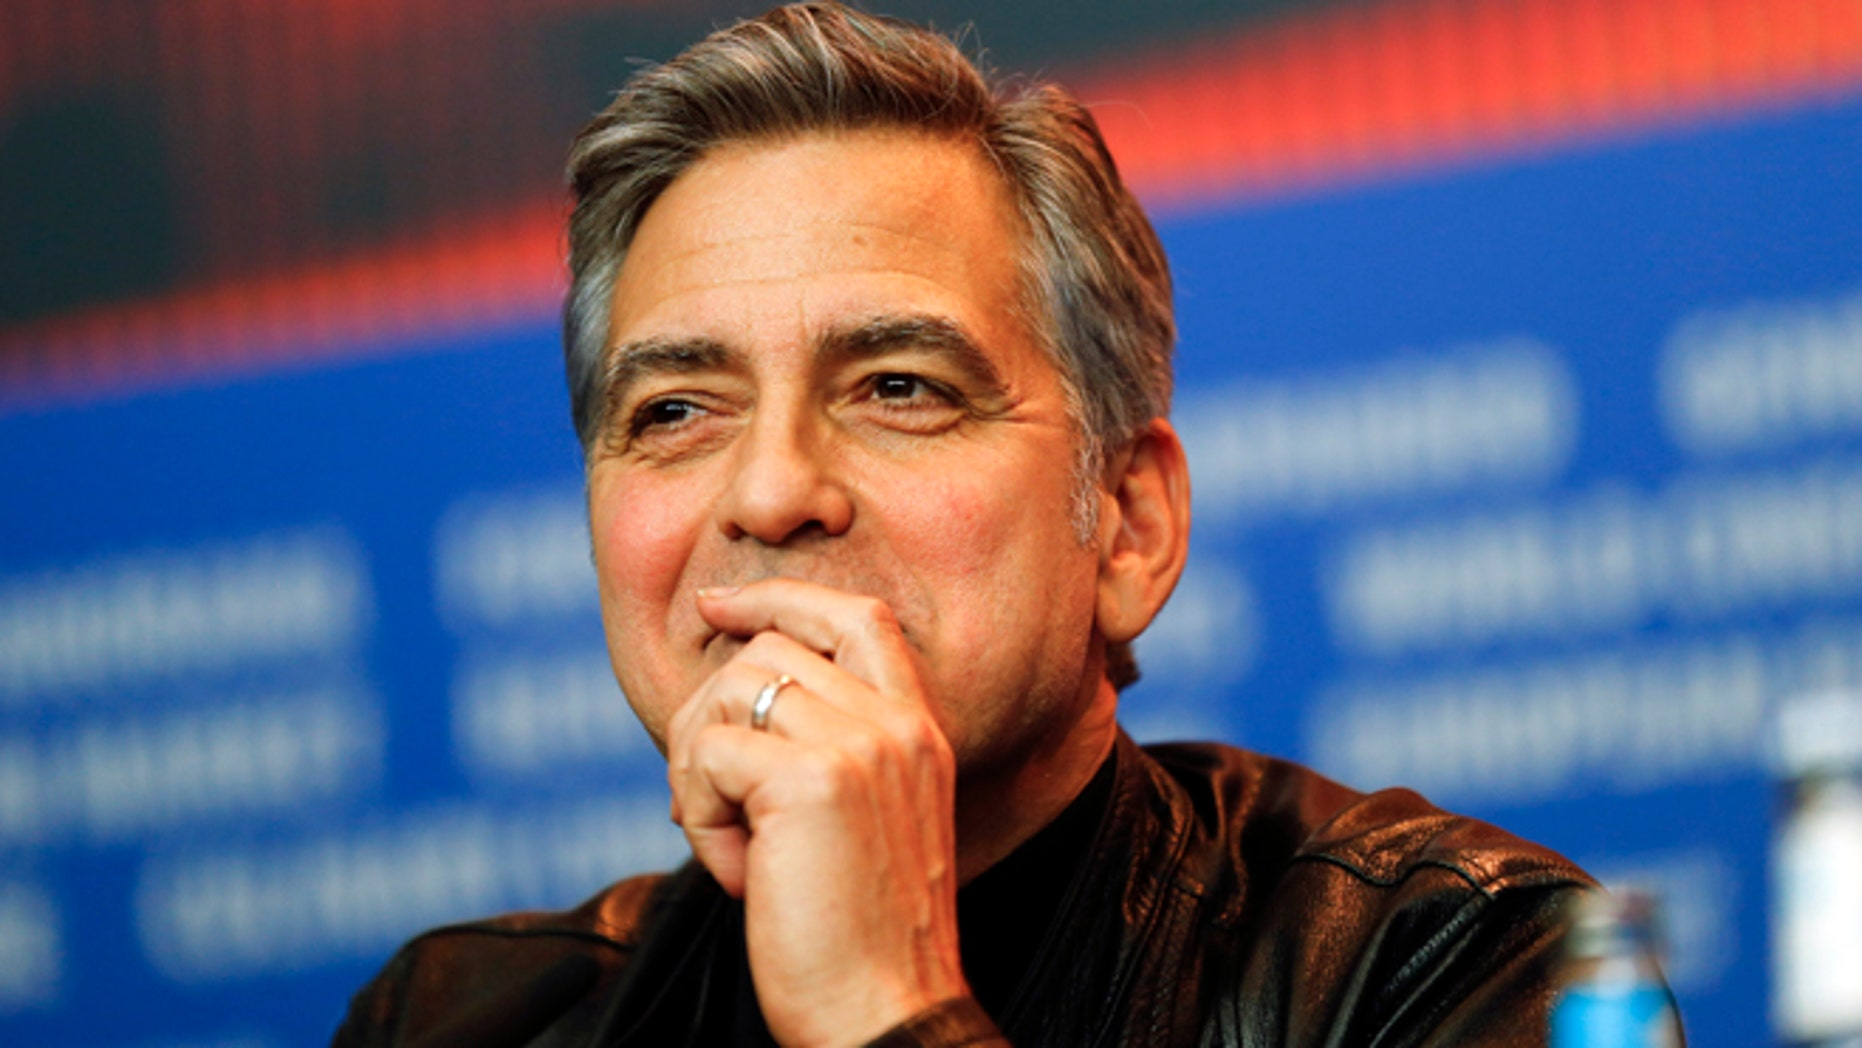 Feb. 11, 2016. George Clooney attends a press conference at the 2016 Berlinale Film Festival in Berlin, Germany.